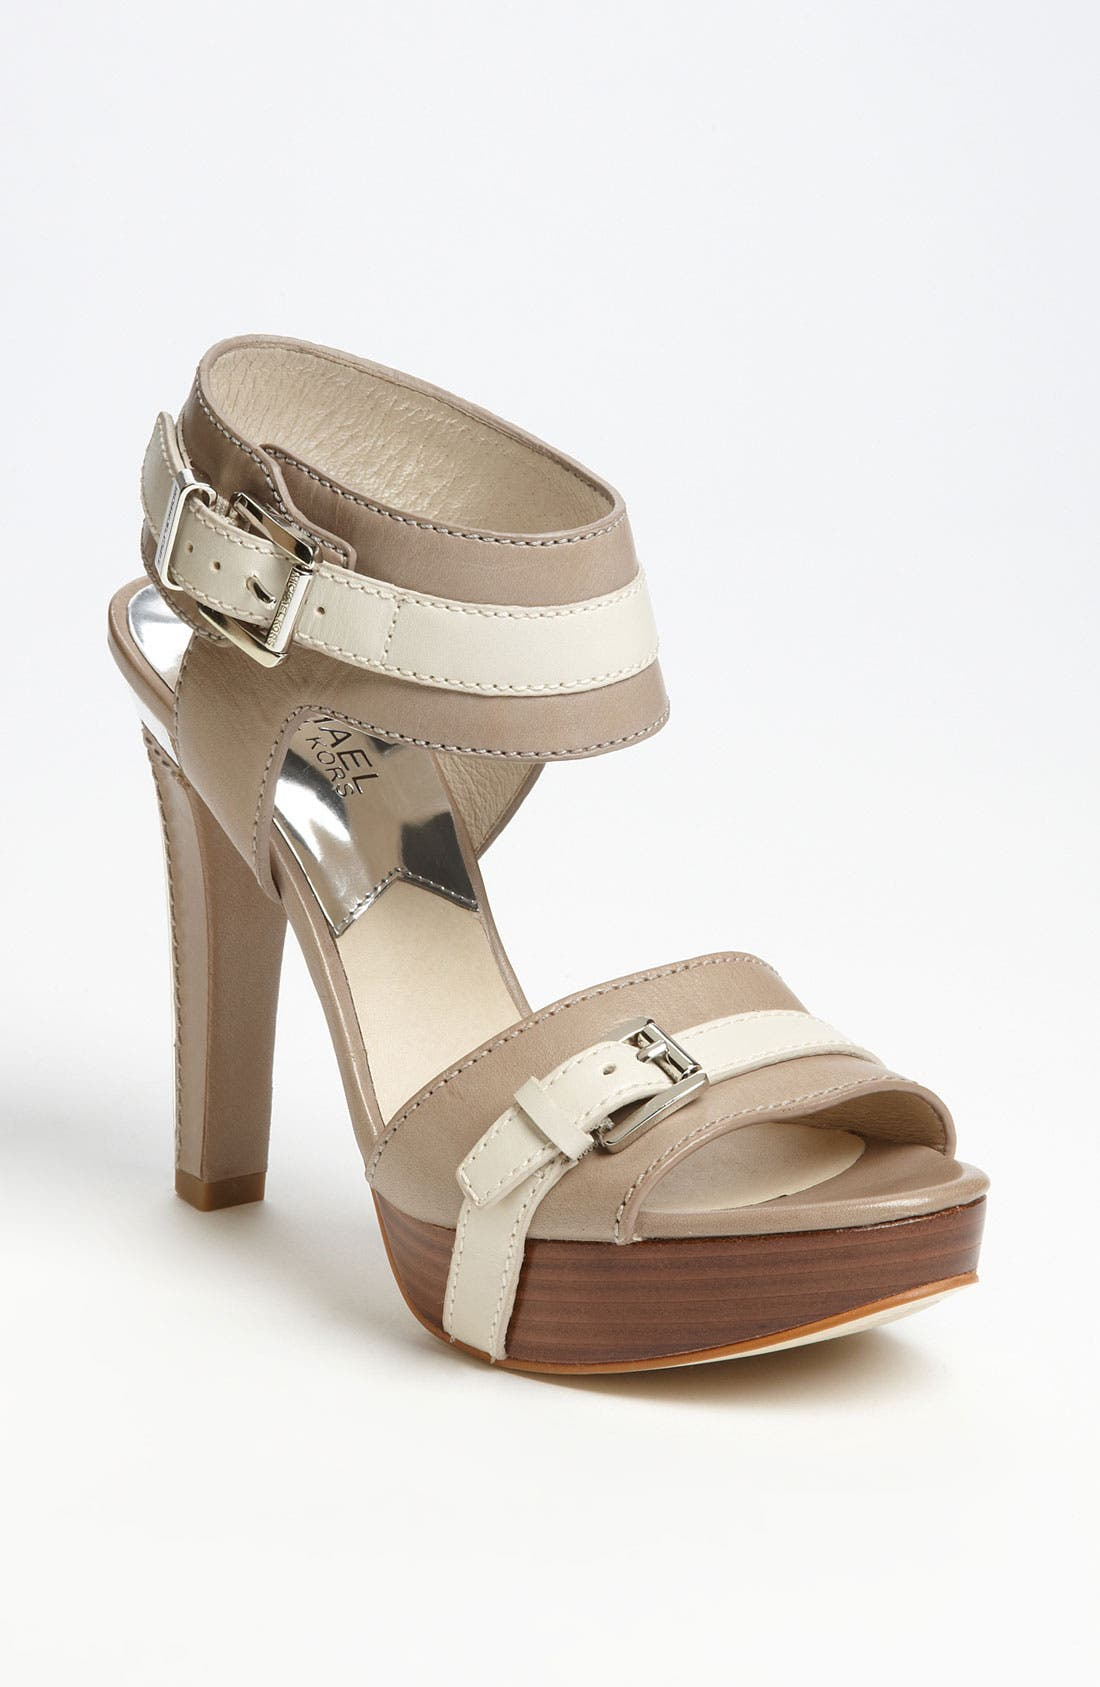 Alternate Image 1 Selected - MICHAEL Michael Kors 'Grace' Sandal